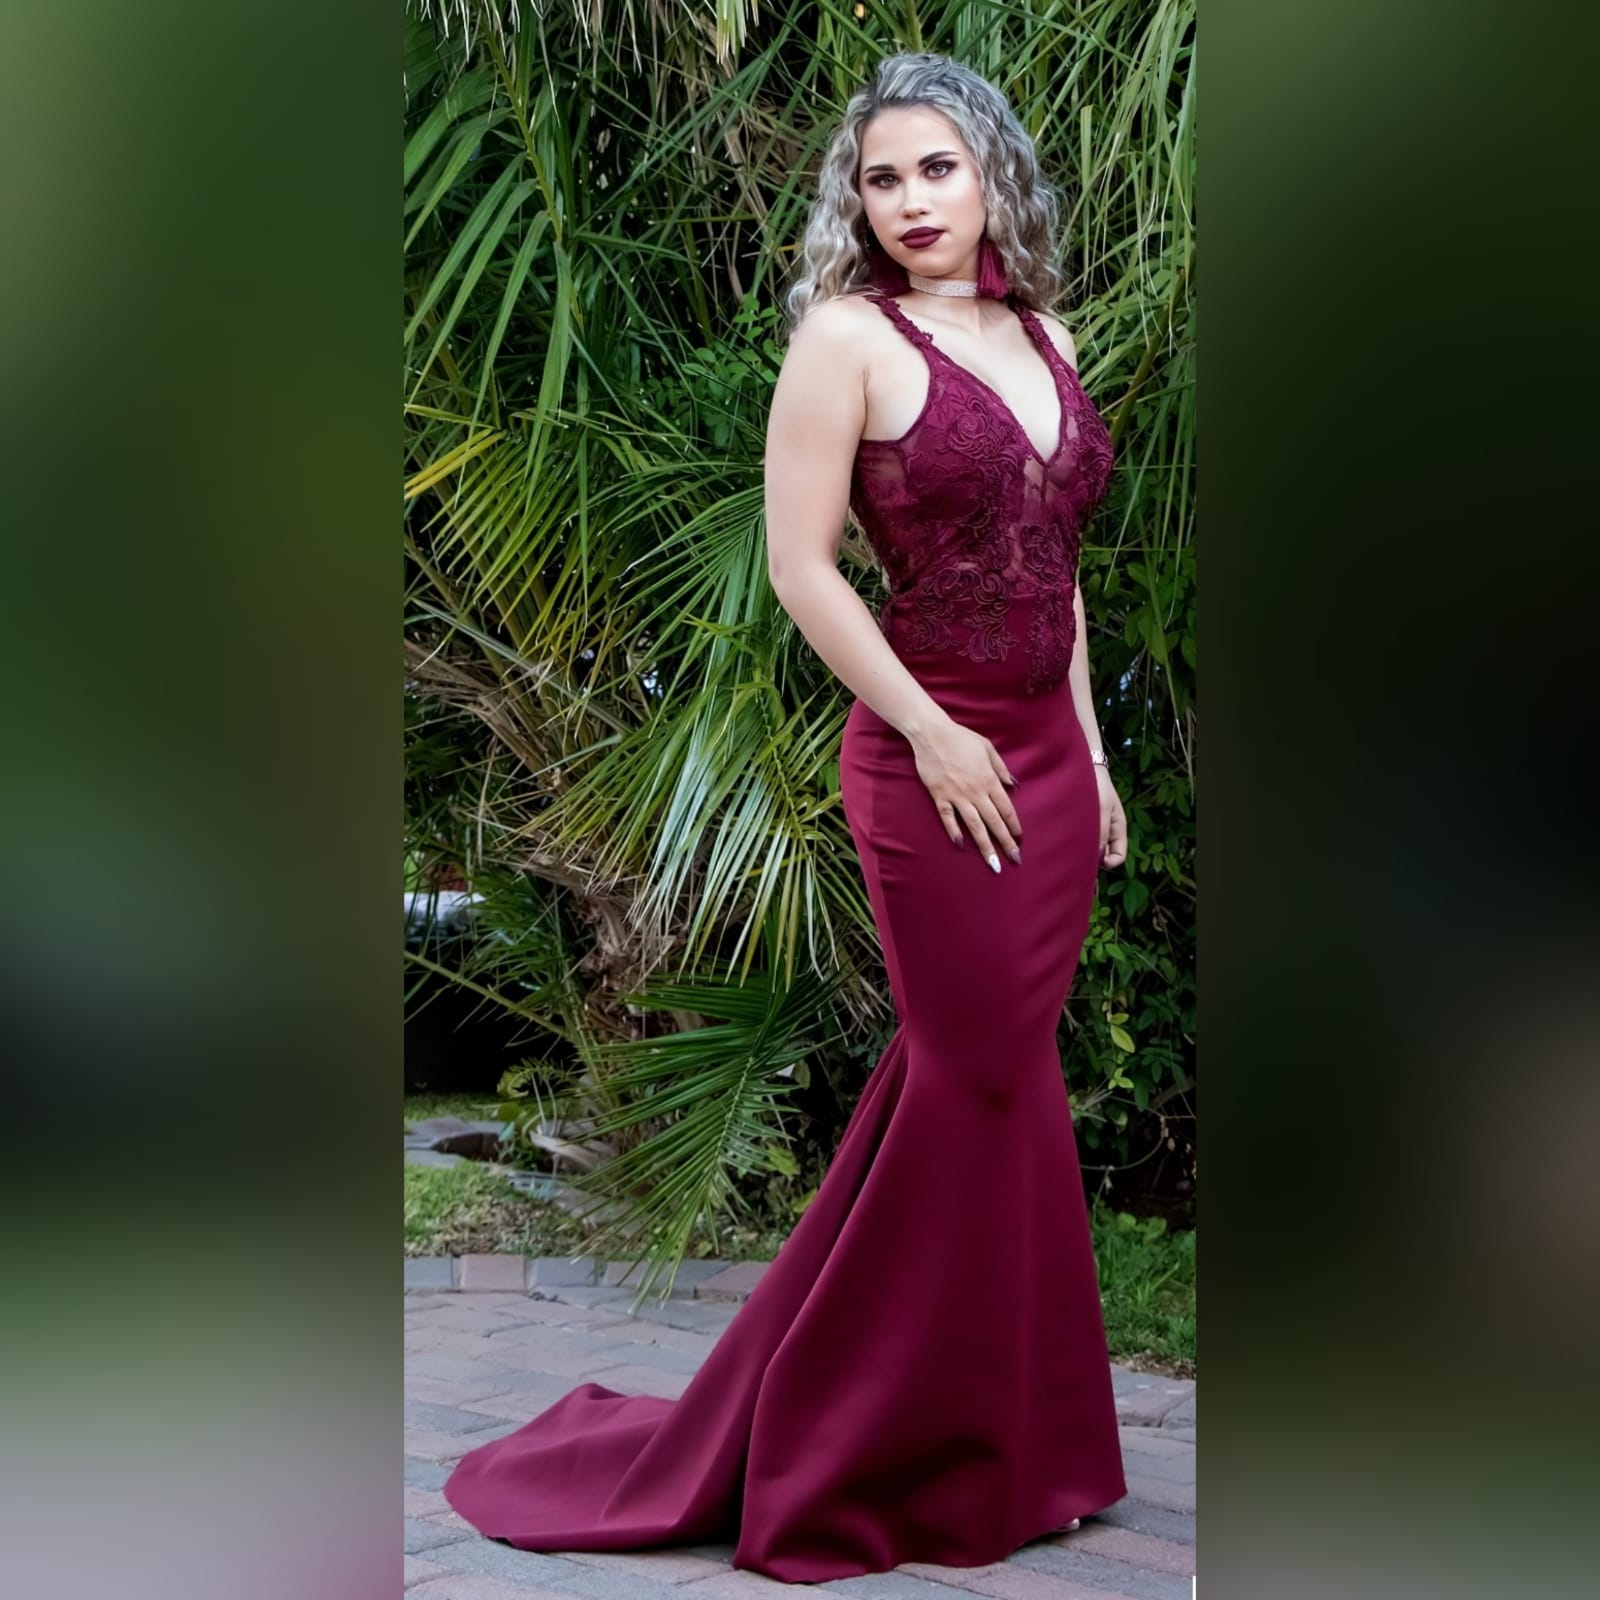 Burgundy soft mermaid sexy elegant prom dress 3 burgundy soft mermaid sexy elegant prom dress. With an illusion lace bodice with deep v neckline, low open v back with strap detail, with a train